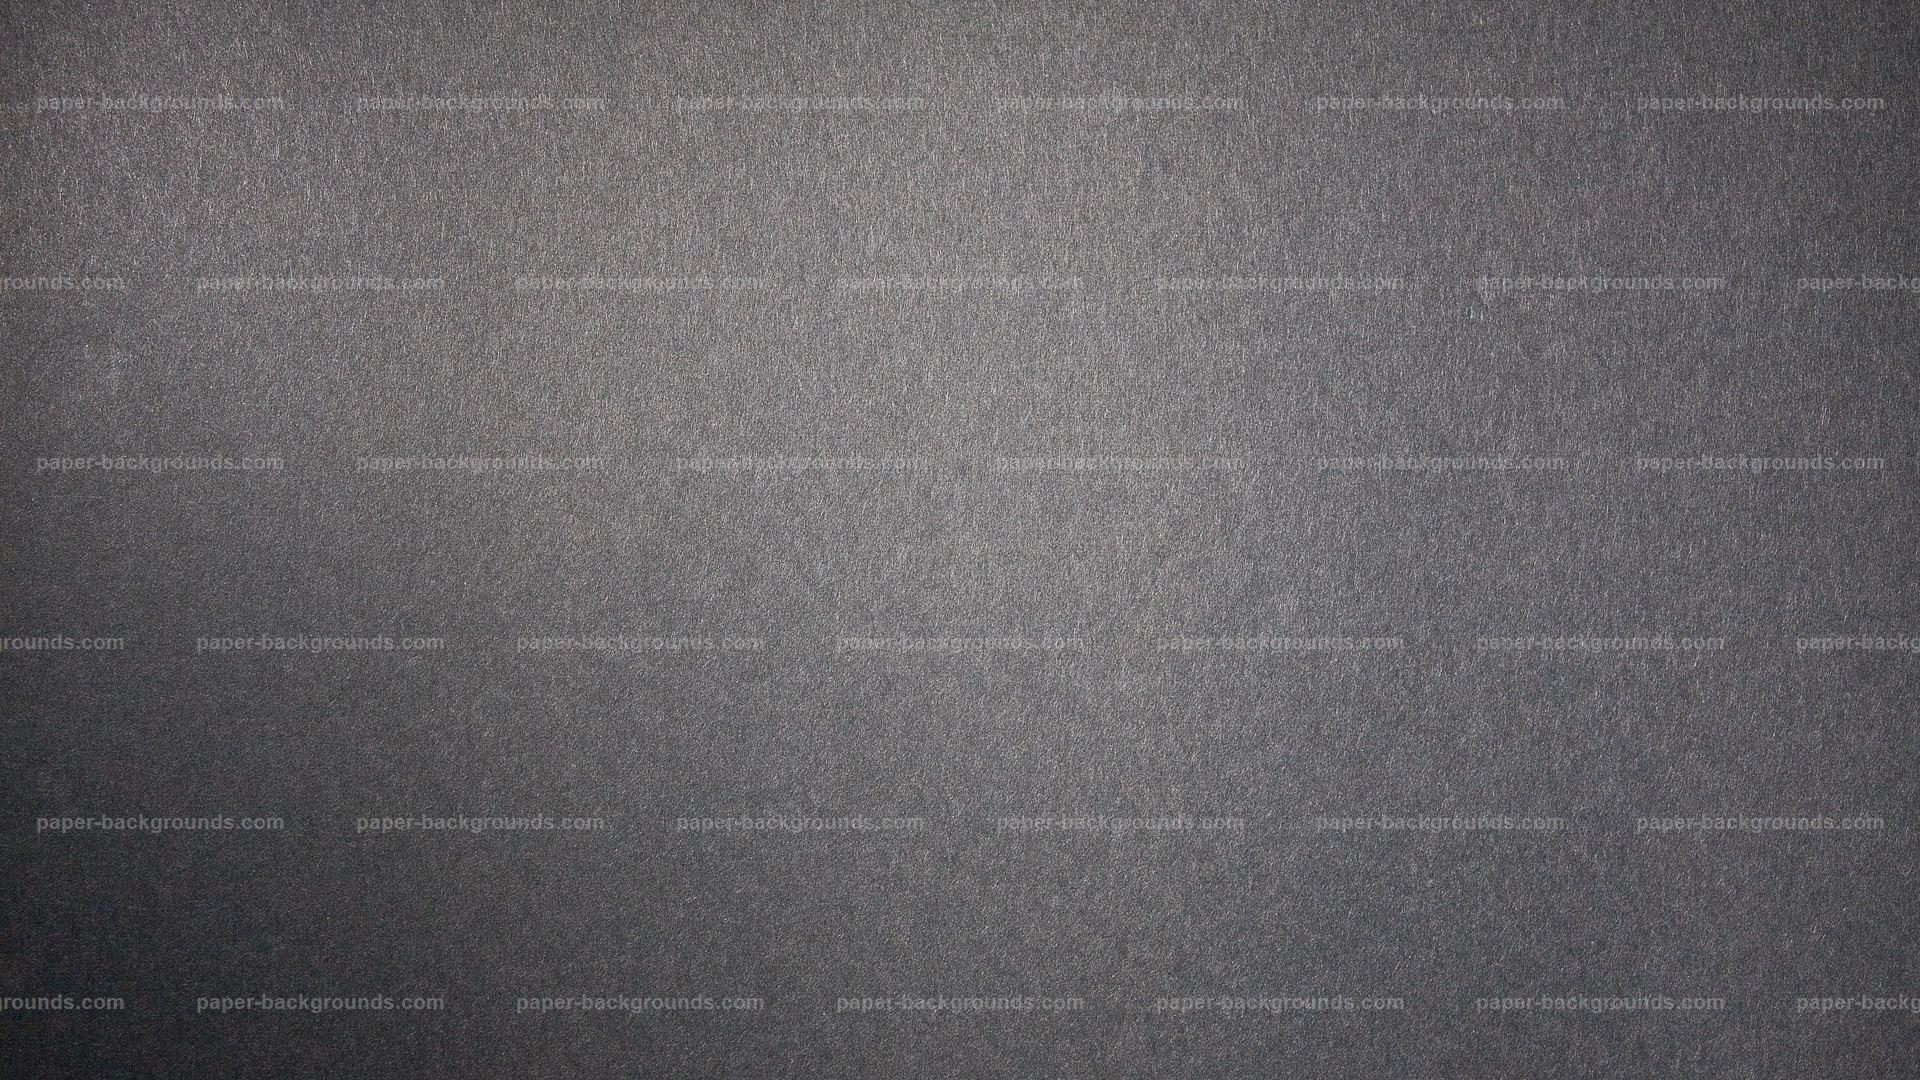 Black Paper Texture Background HD